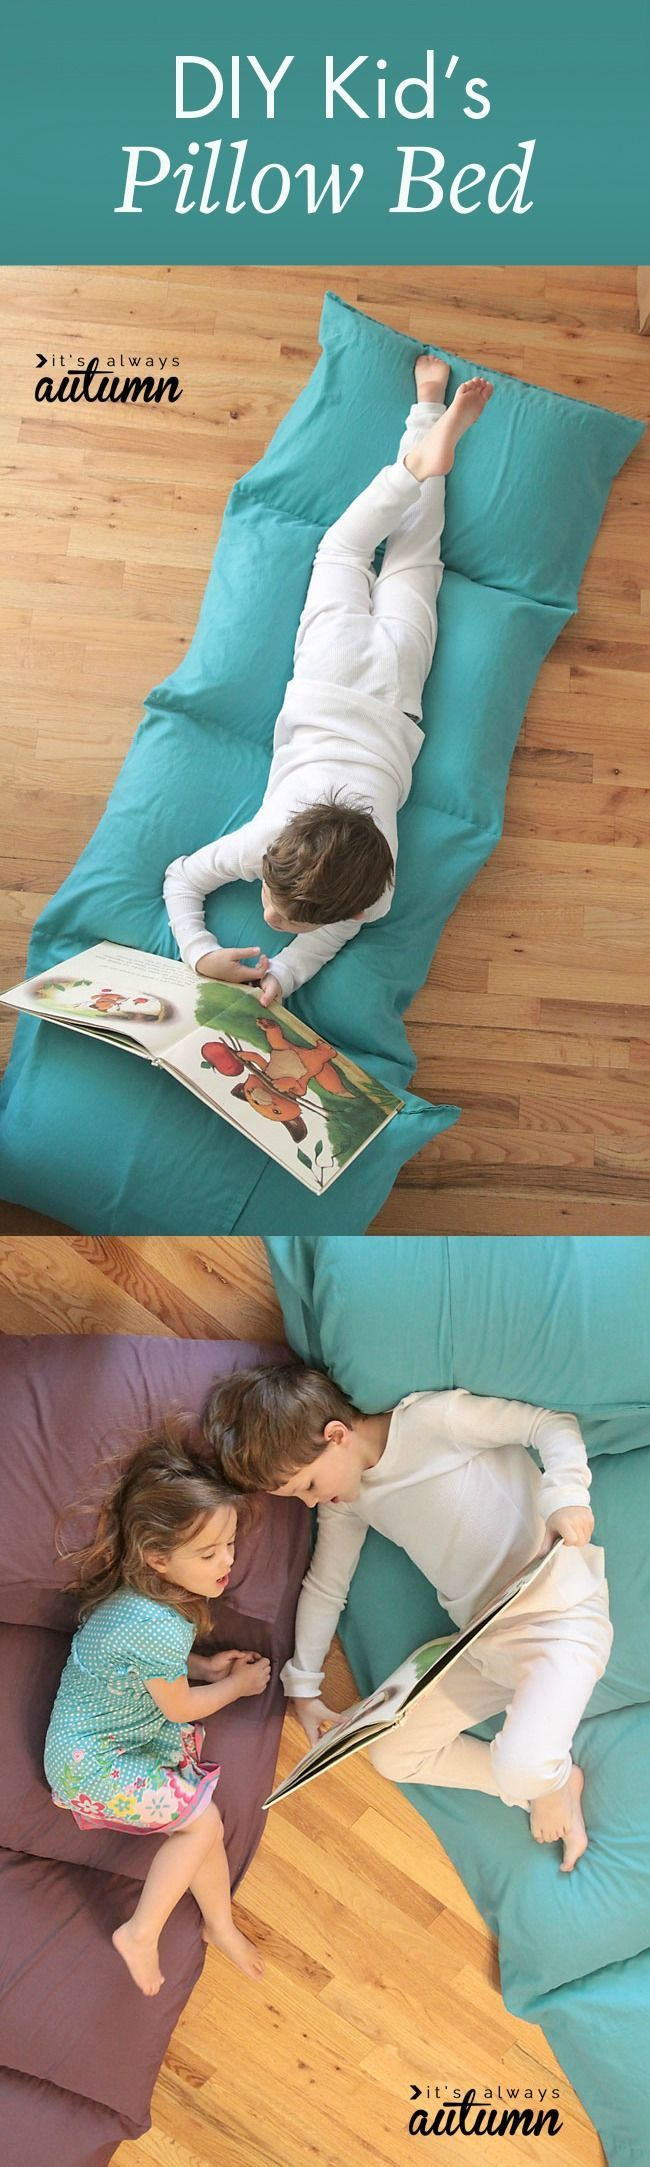 Ideal for reading, movie watching, and snuggling, this DIY Kid's Pillow Bed, from It's Always Autumn, is a fantastic homemade gift idea to make your kids smile. Let's be real—even adults would love this!